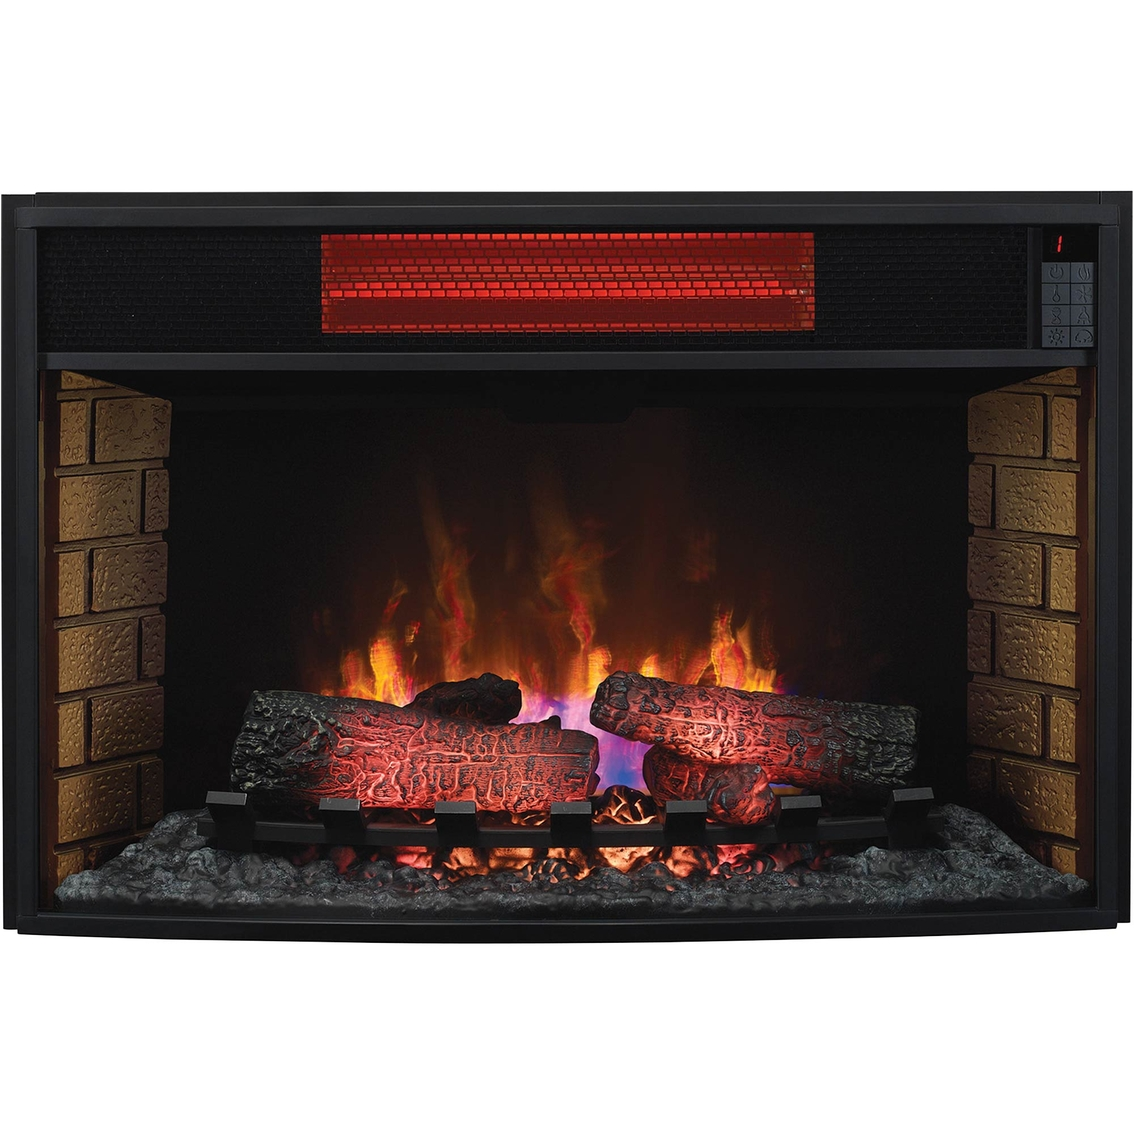 Shop Twinstar ClassicFlame Electric 33 In. Fireplace Insert and other name brand Media Furniture Home & Appliances at The Exchange. You